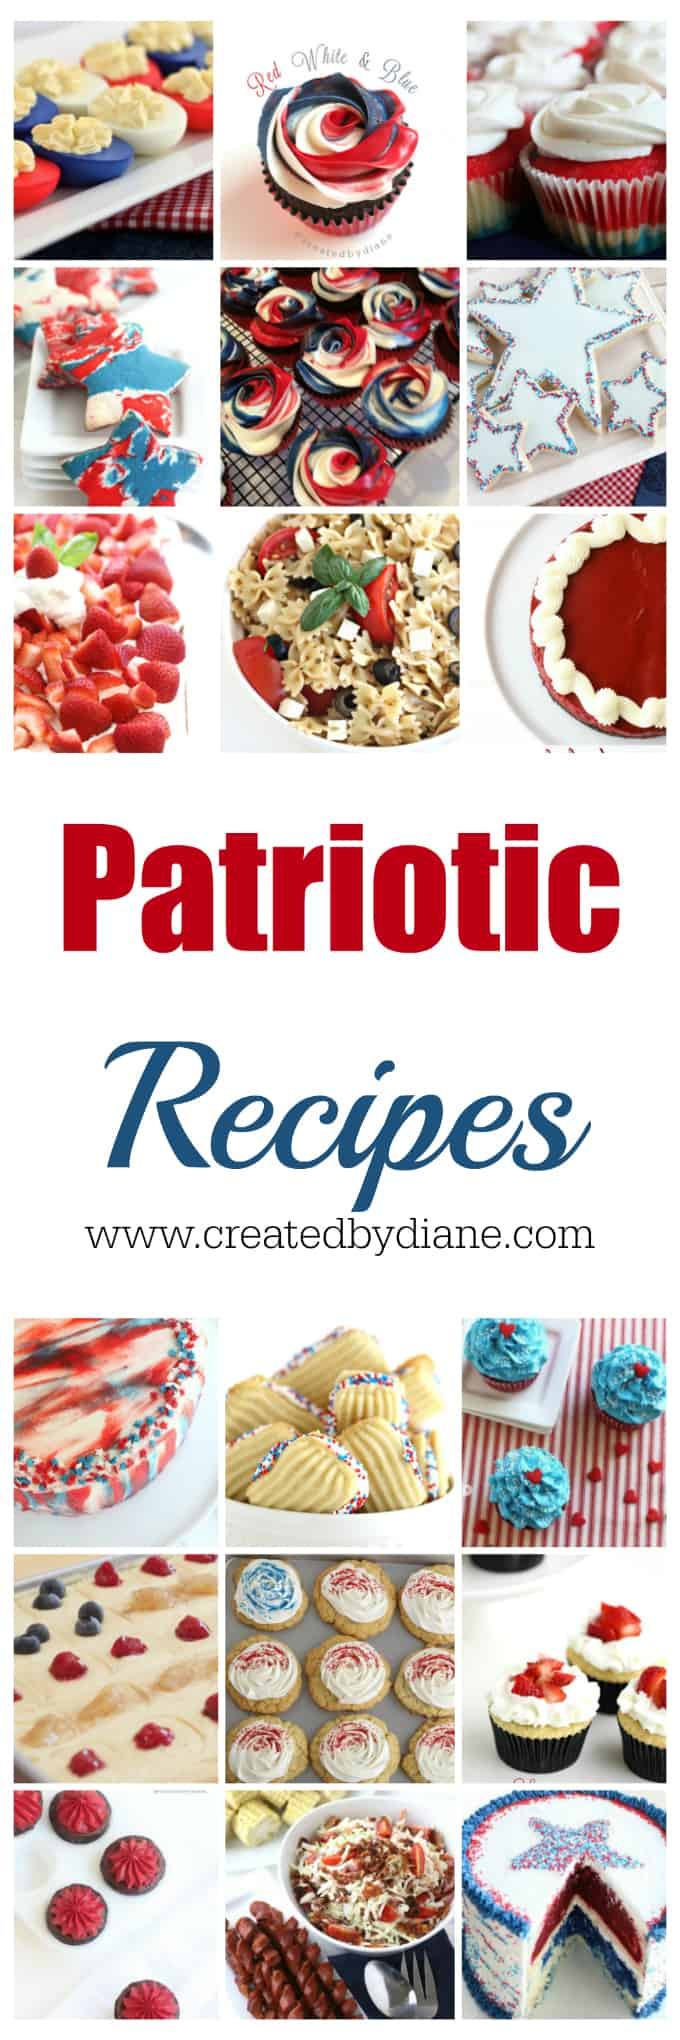 patriotic recipes perfect all summer long, all things red white and blue www.createdbydiane.com